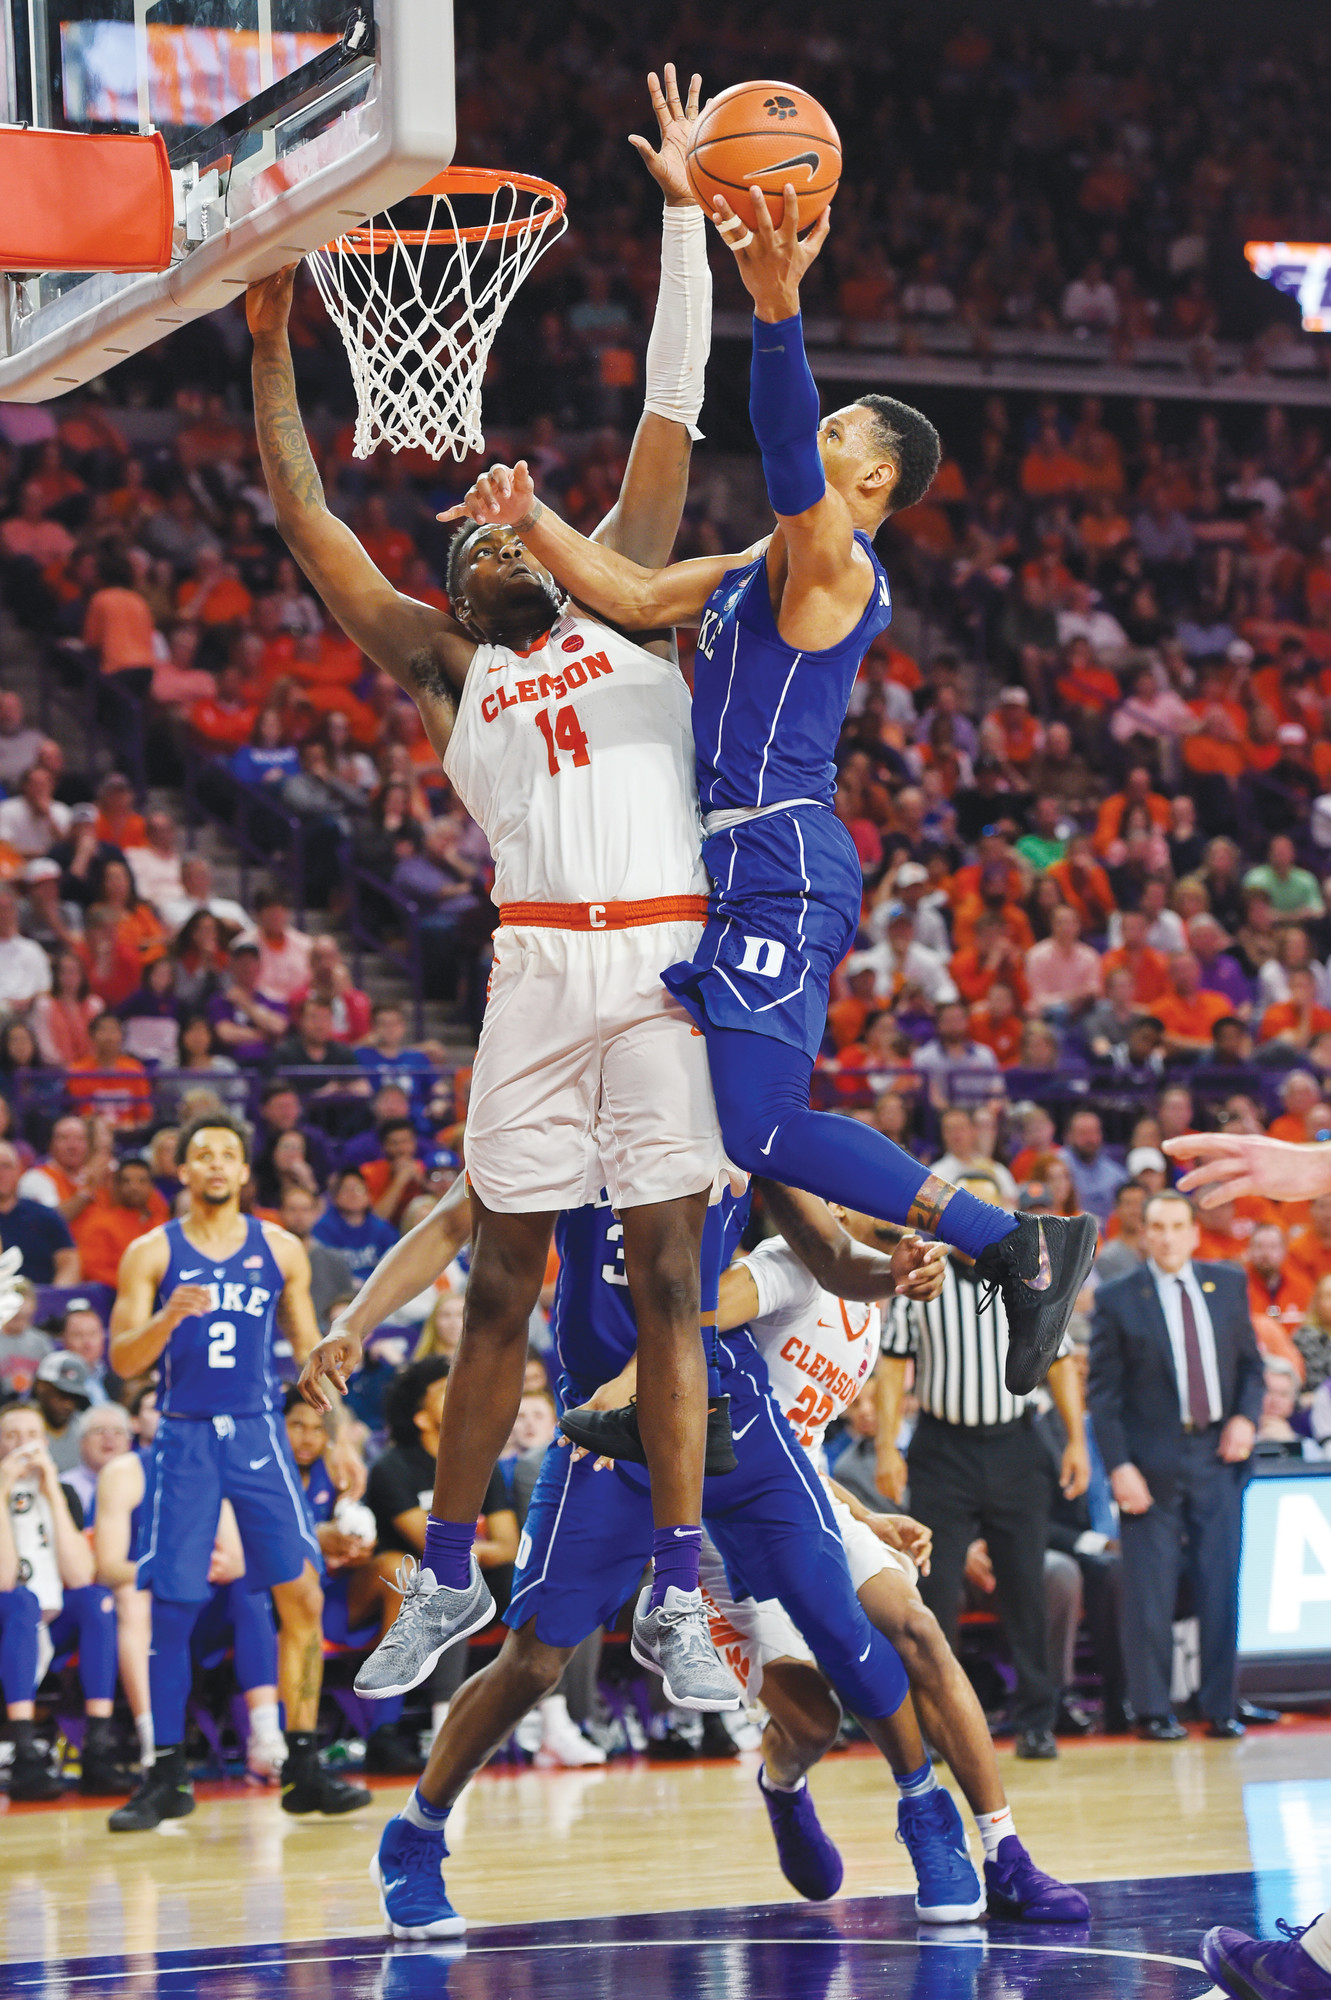 Duke's Trevon Duval, right, drives to the basket while defended by Clemson's Elijah Thomas during the second half of the Blue Devils 66-57 victory over the Tigers on Sunday in Clemson.